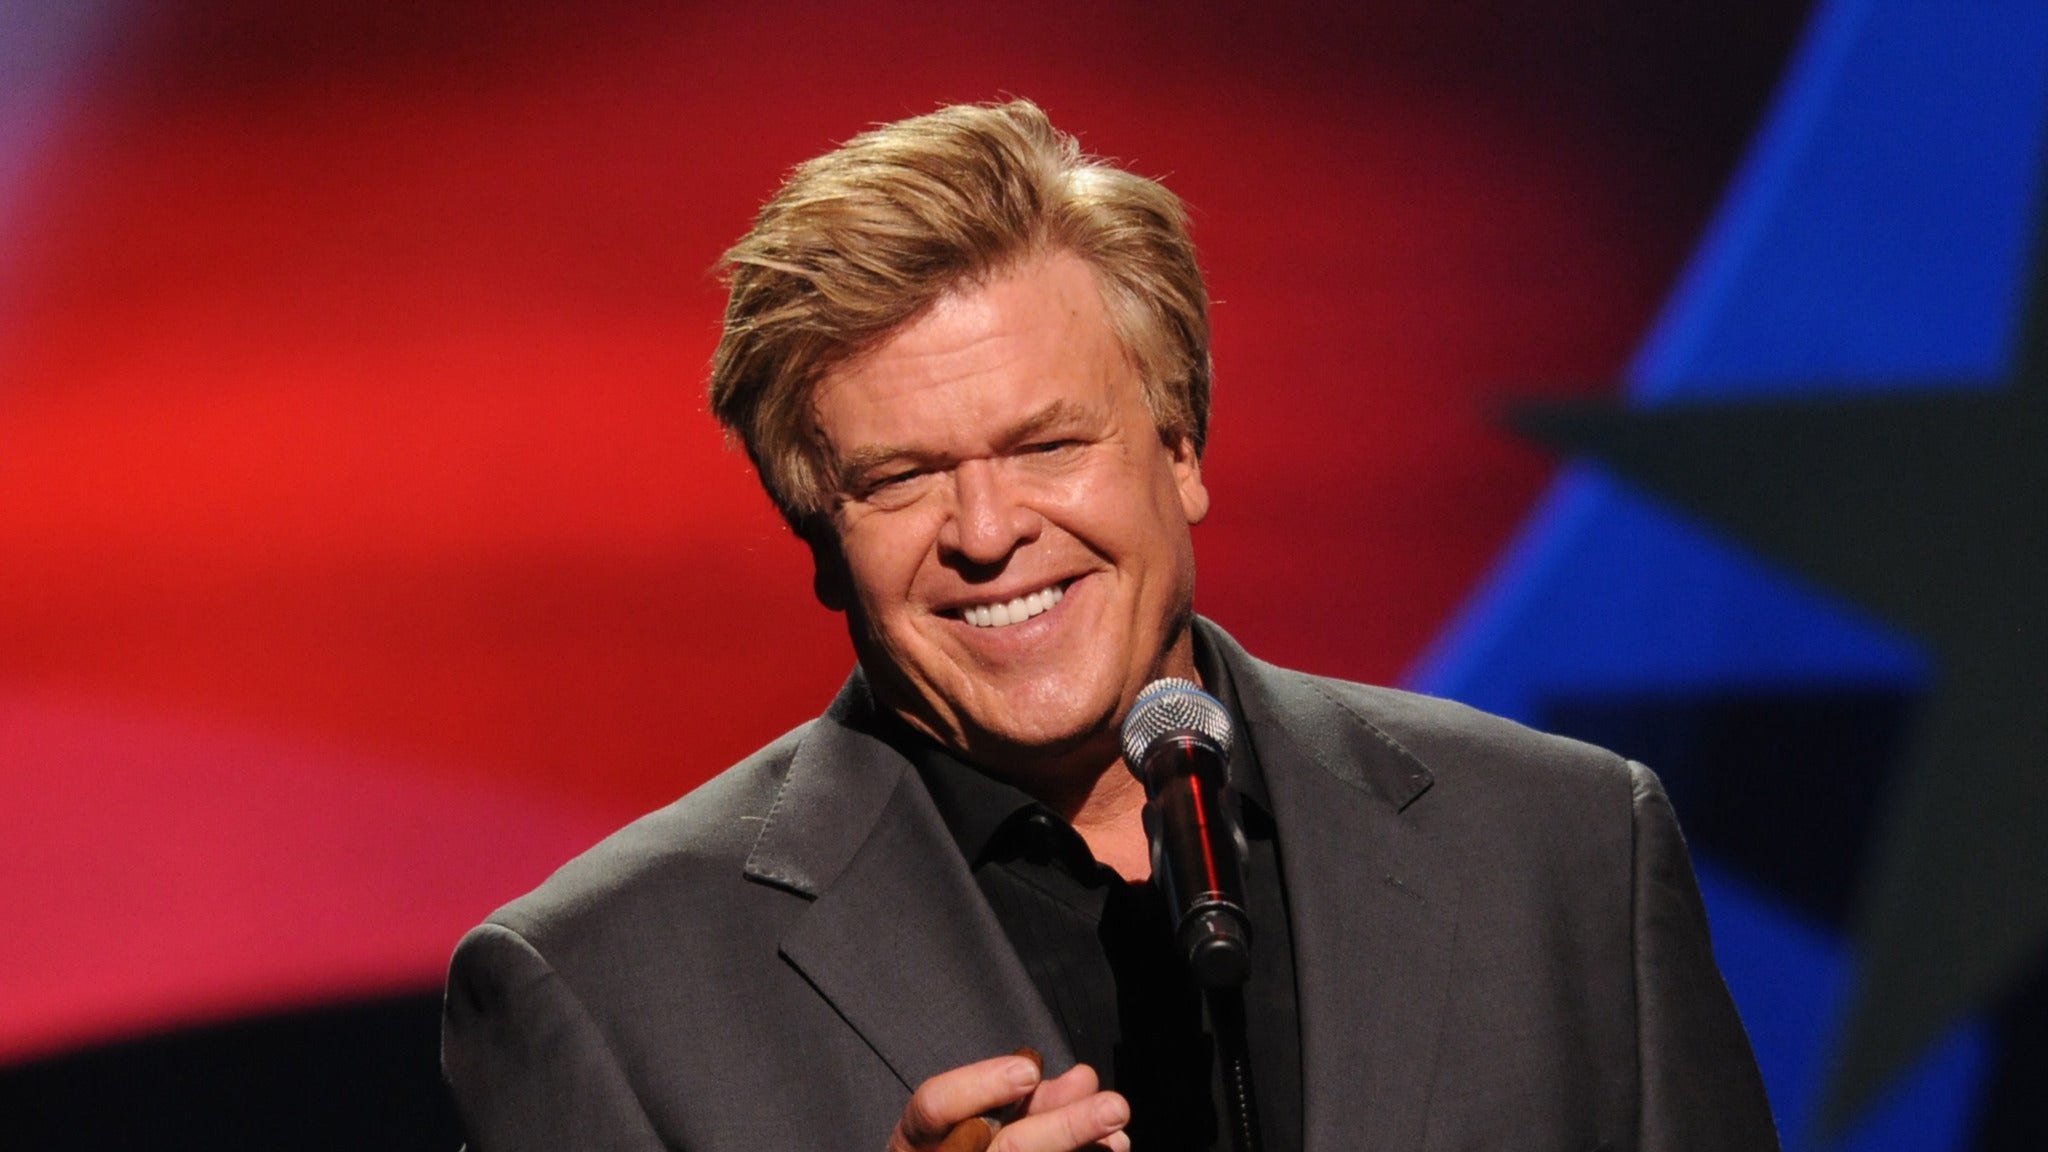 Ron White at Von Braun Center Concert Hall